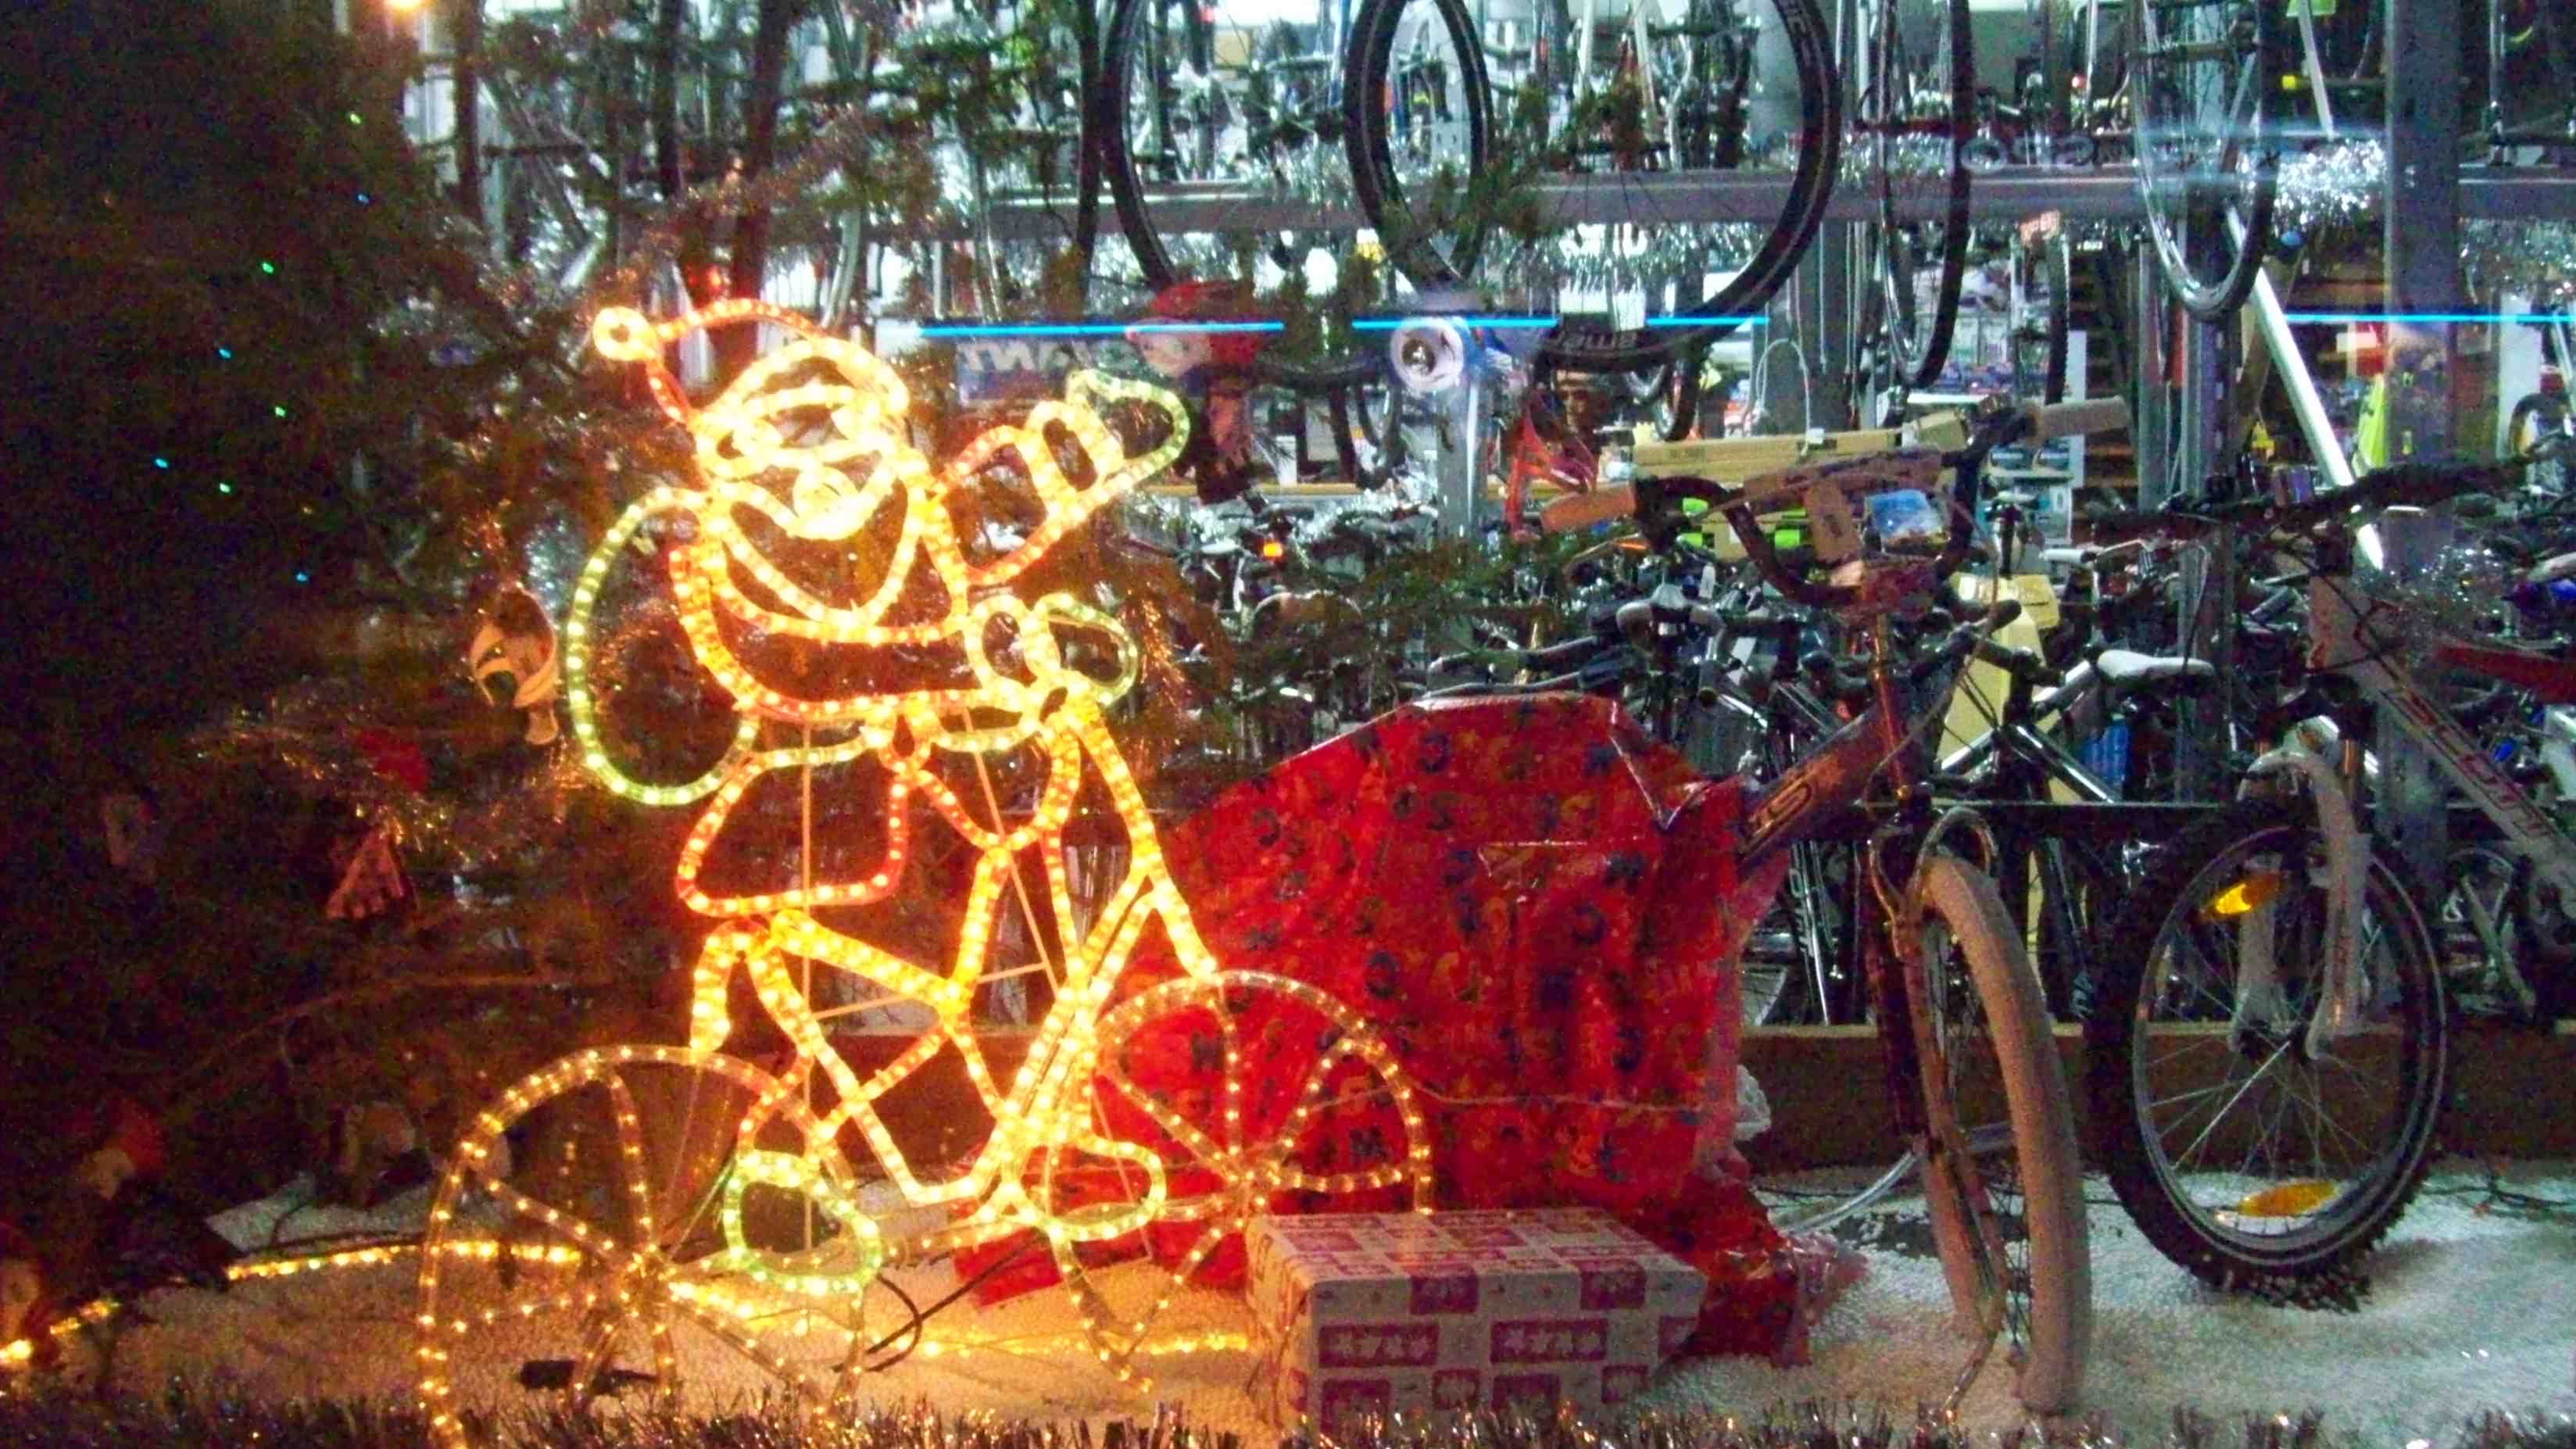 Neon Sporty Santa and bikes, Arm, Shopping, Nut, Purchase, HQ Photo